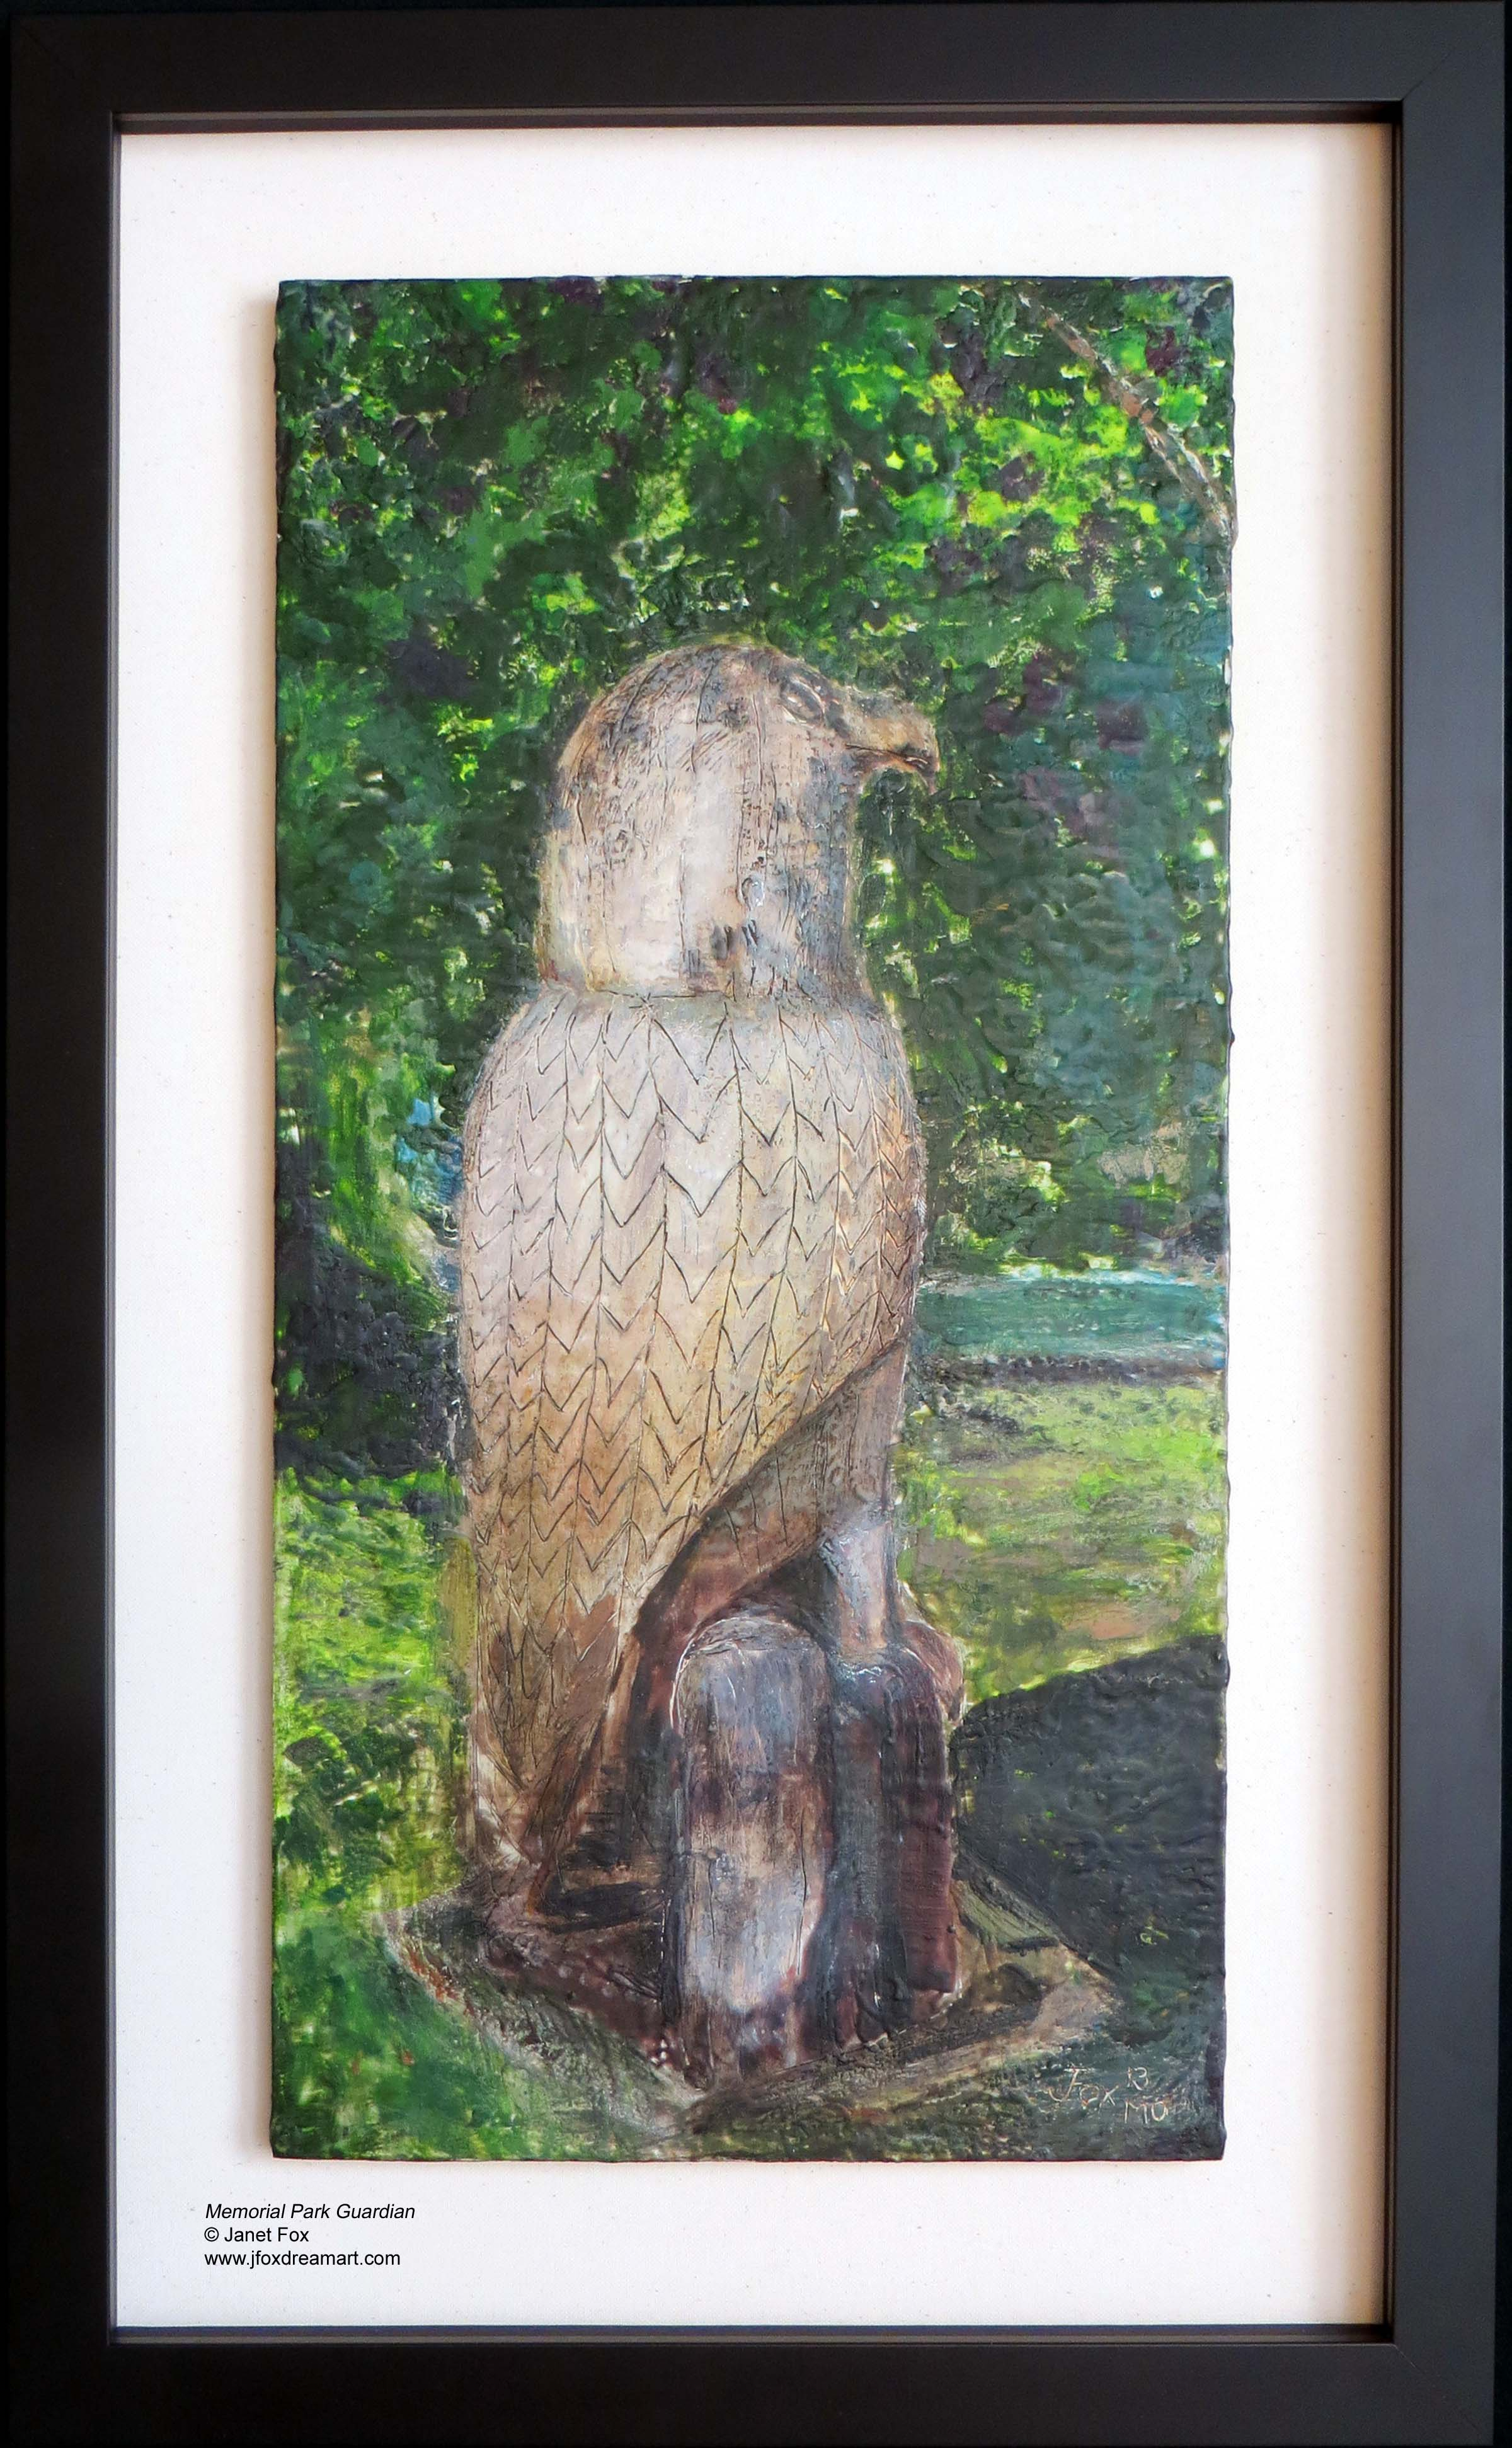 """Image of an encaustic painting by Janet Fox titled """"Memorial Park Guardian"""""""